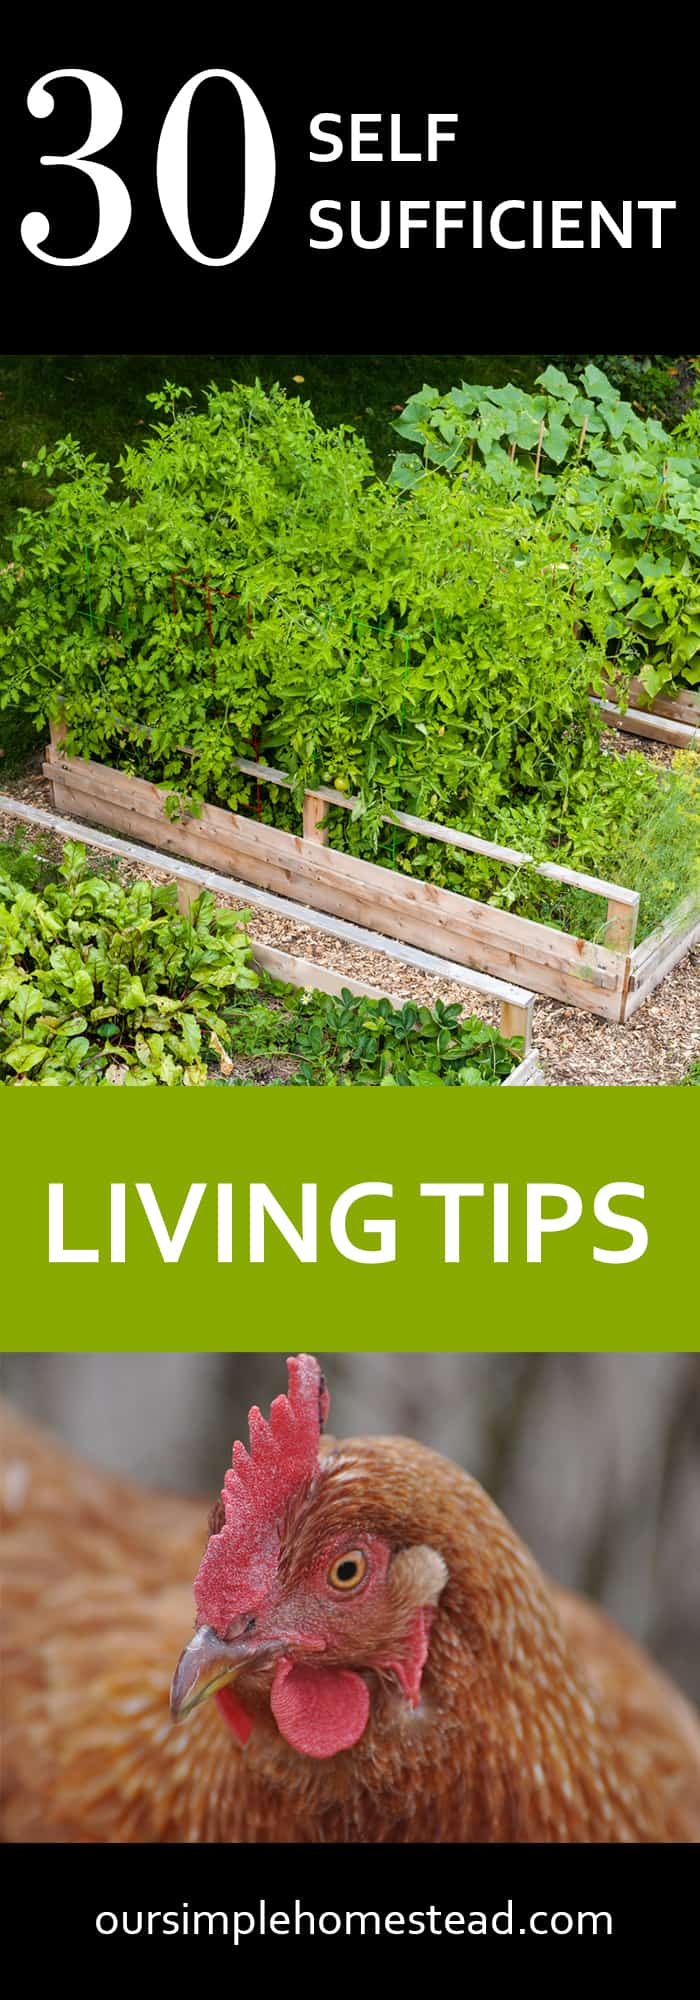 30 Self-Sufficient Living Tips